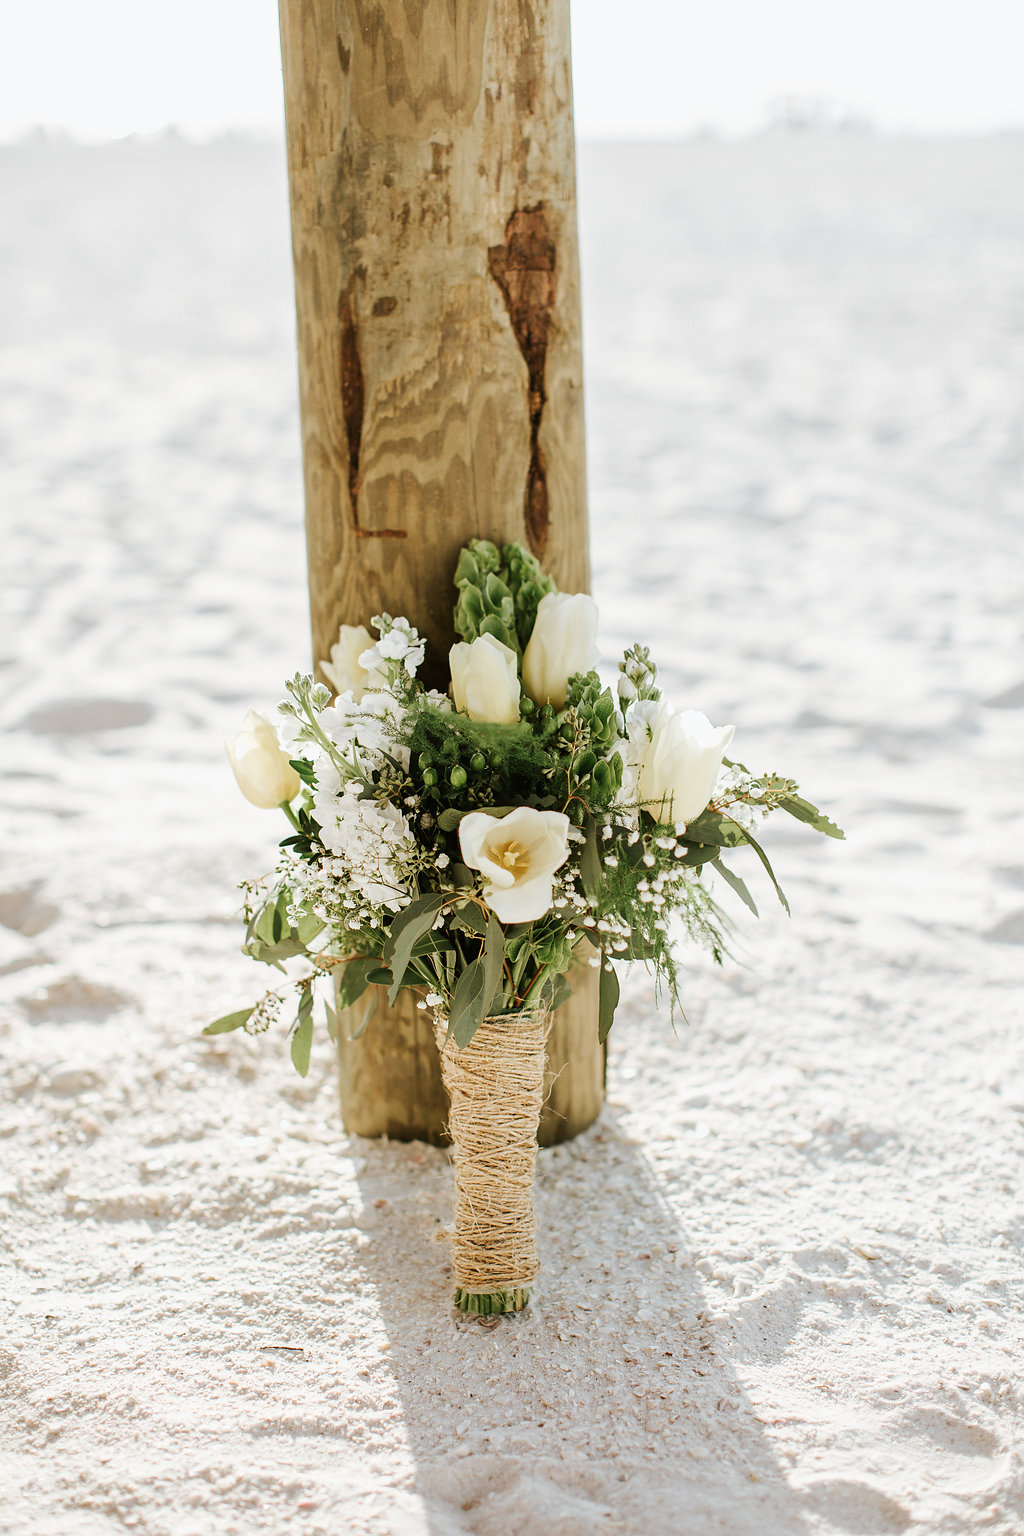 Juliethbravo-bouquet-bride-weddding-planner-tulips-flower-bridetobe-marcoisland-jwmarriott-beachweddinf-destinationwedding-bodadestino.jpg